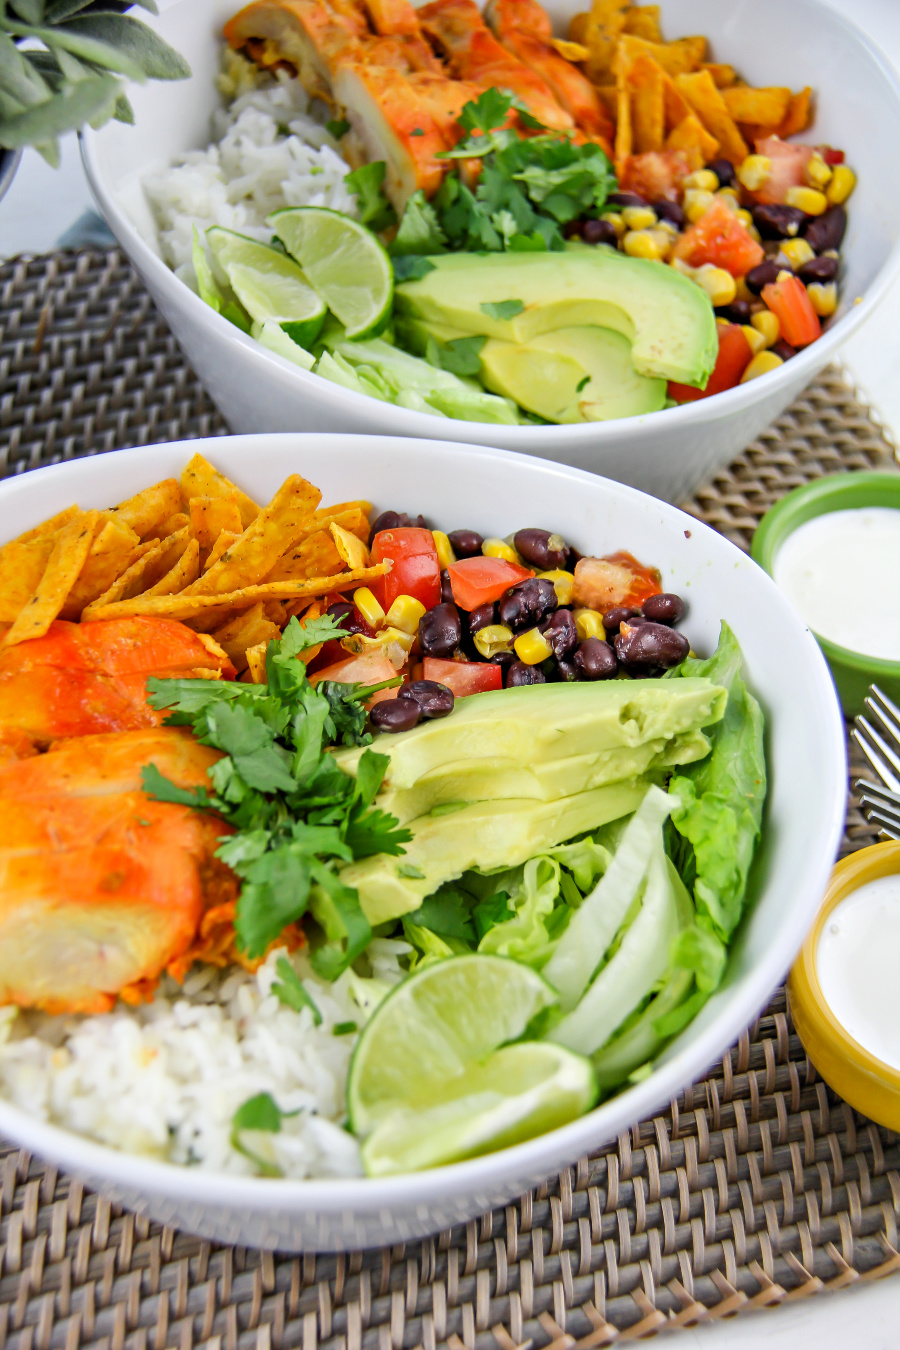 chicken taco ingredients with rice and avocado in bowls